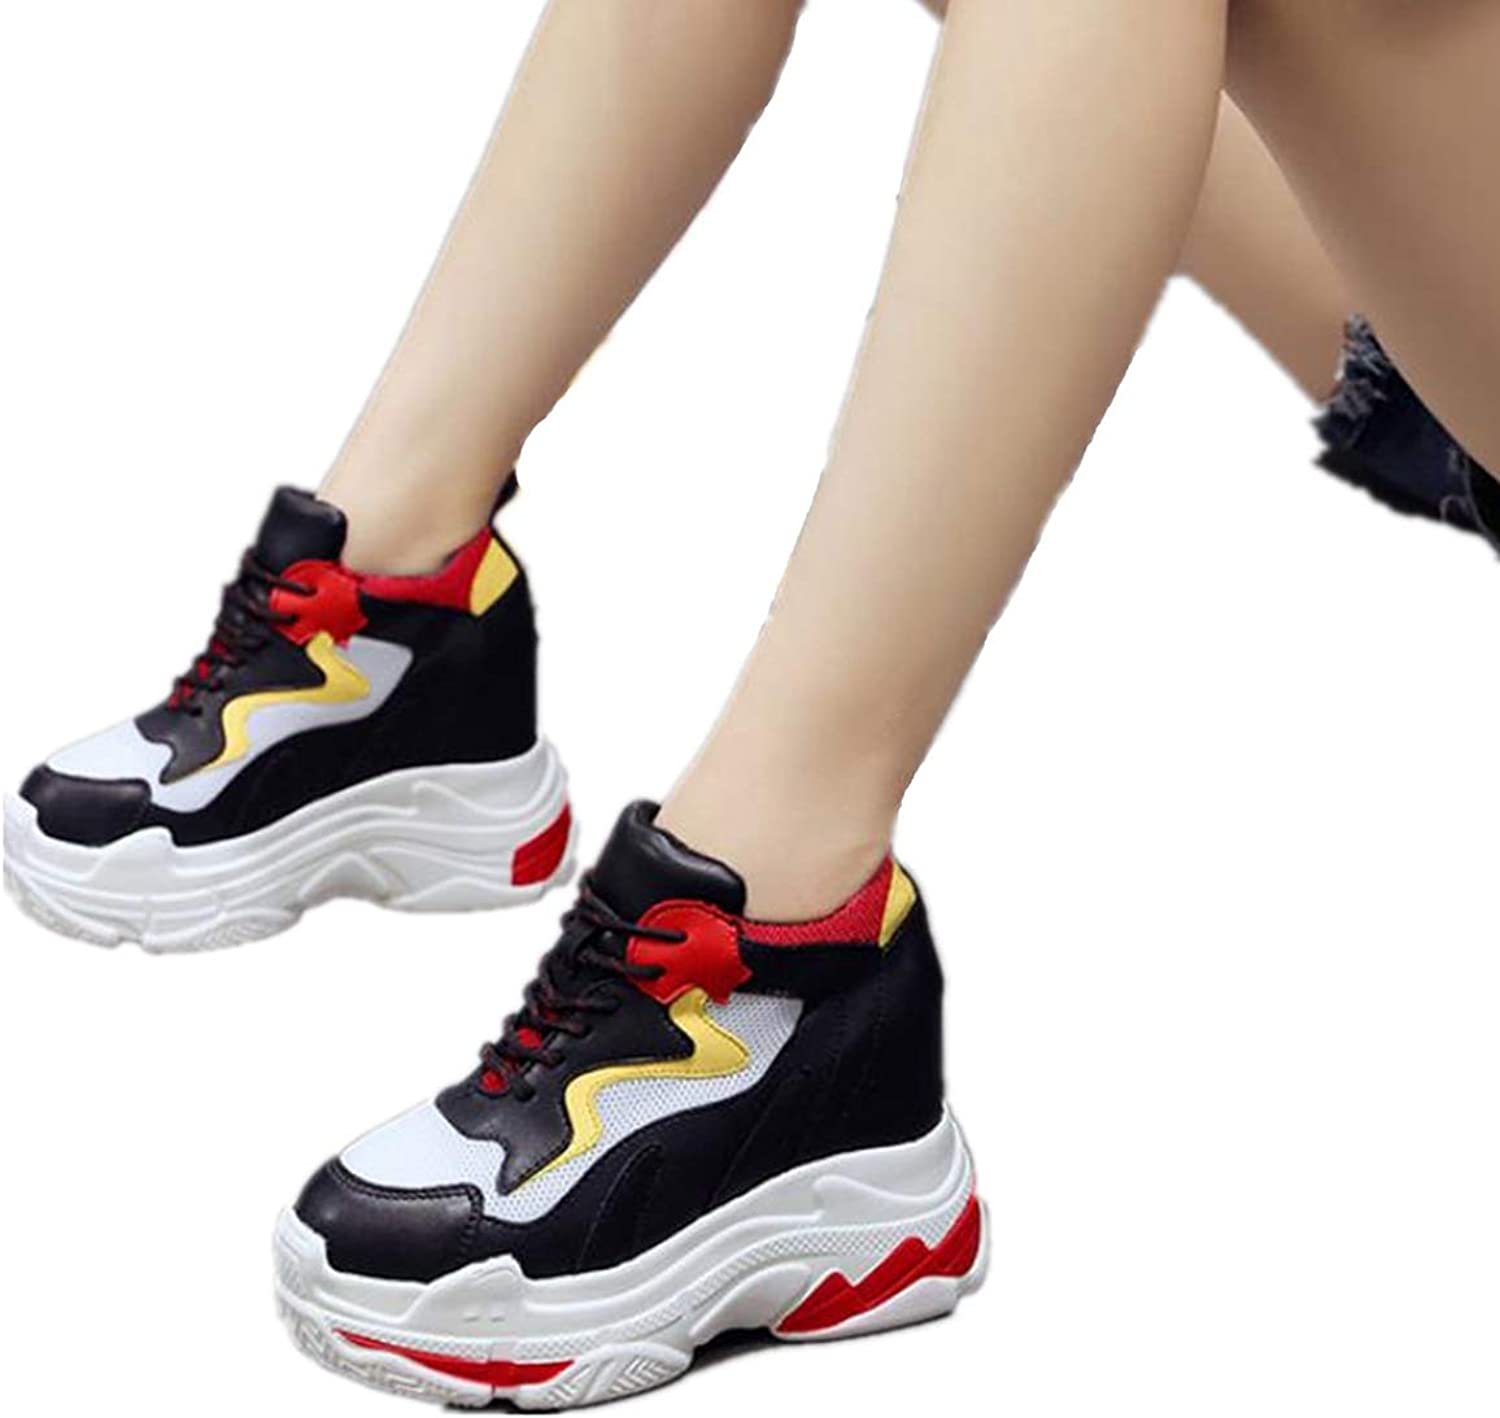 SANOMY Women Casual Wedges Sneaker High Heels Walking shoes Comfortable Platform Thick Sole Trainers Sneakers